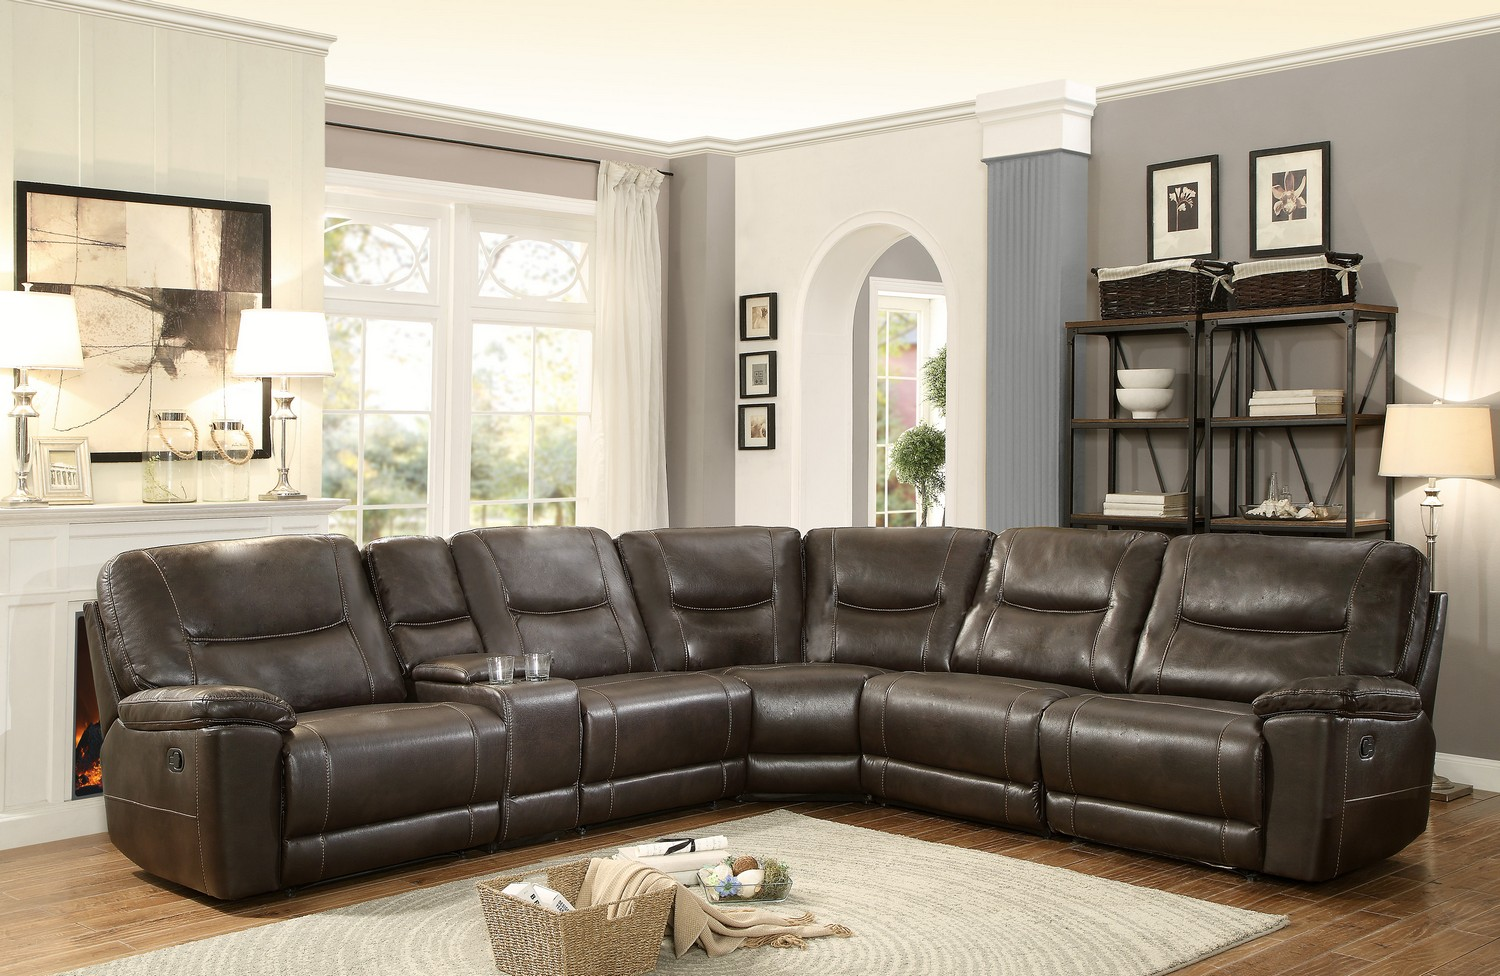 Homelegance Columbus Reclining Sectional Sofa Set D - Breathable Faux Leather - Dark Brown